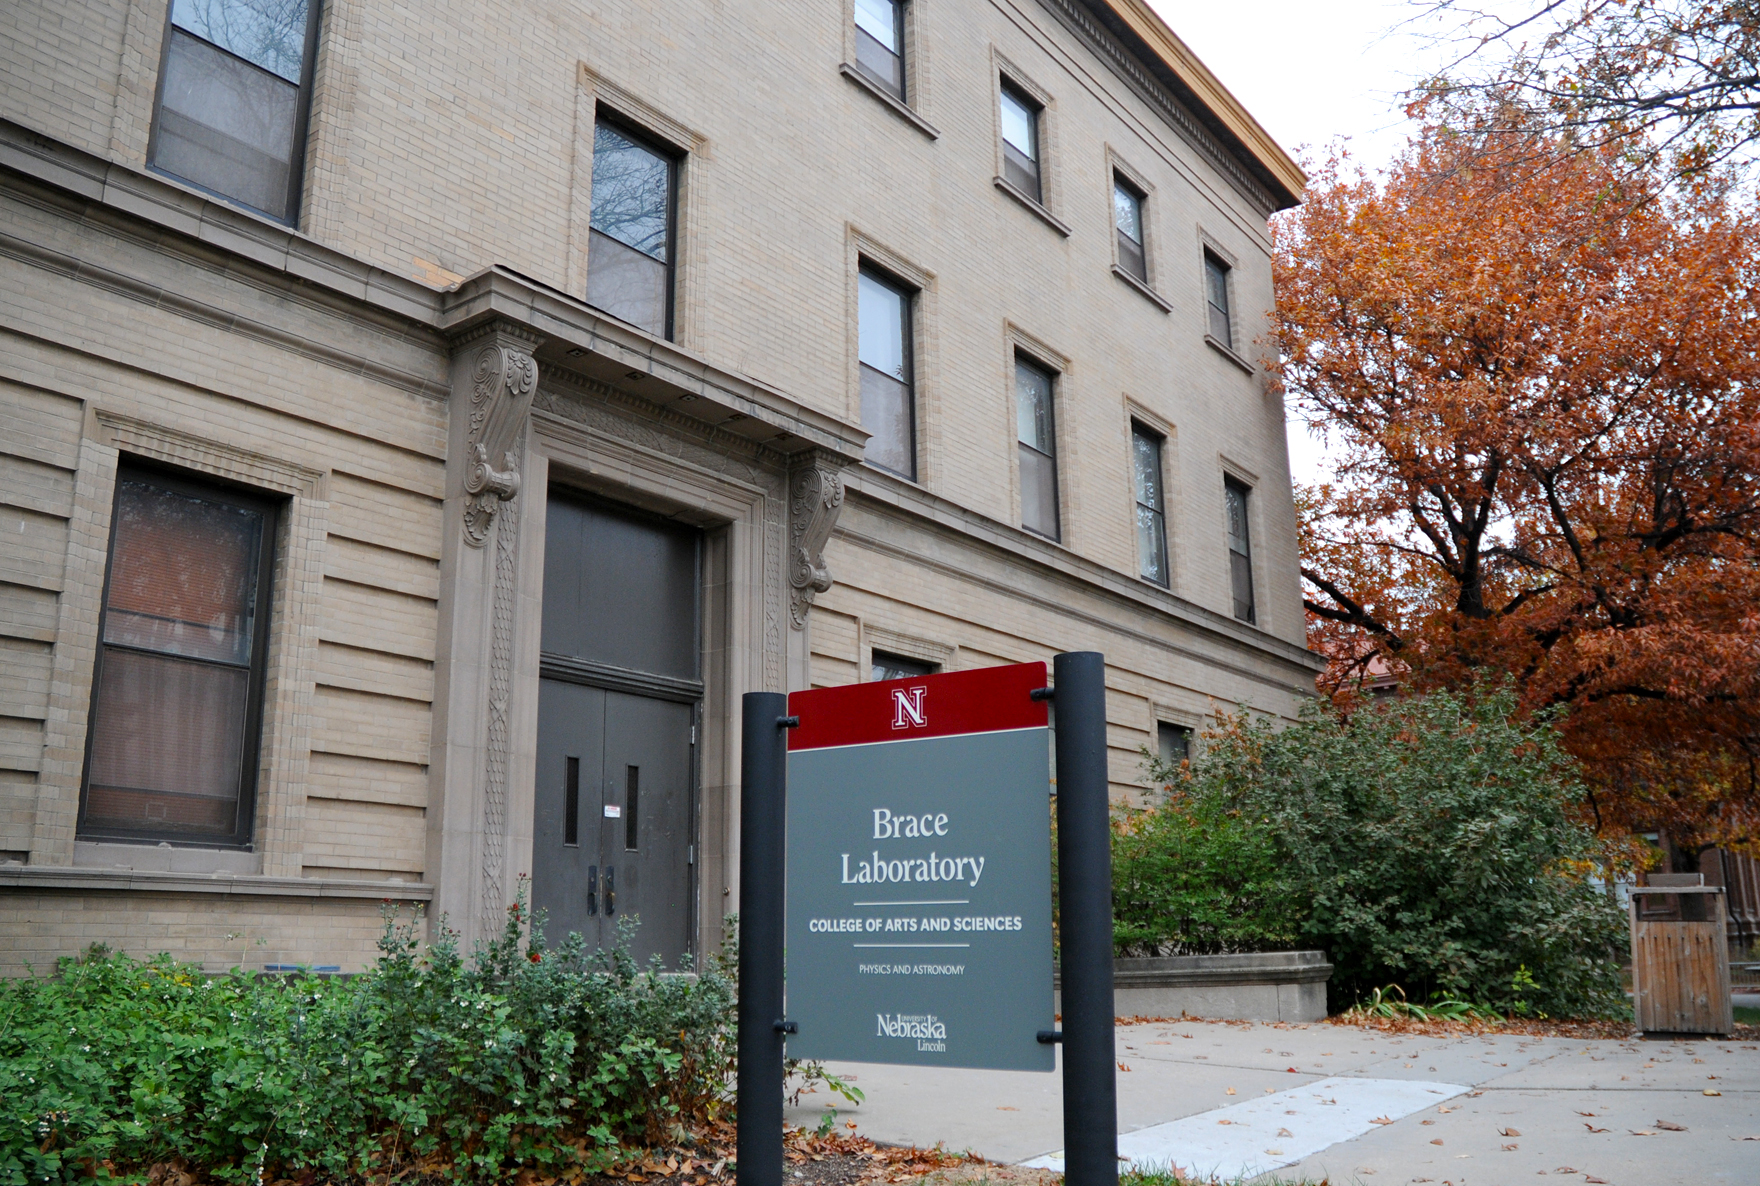 Constrcuted in 1904, Brace Laboratory is UNL's second oldest building. The NU Regents will consider a renovation for Brace.